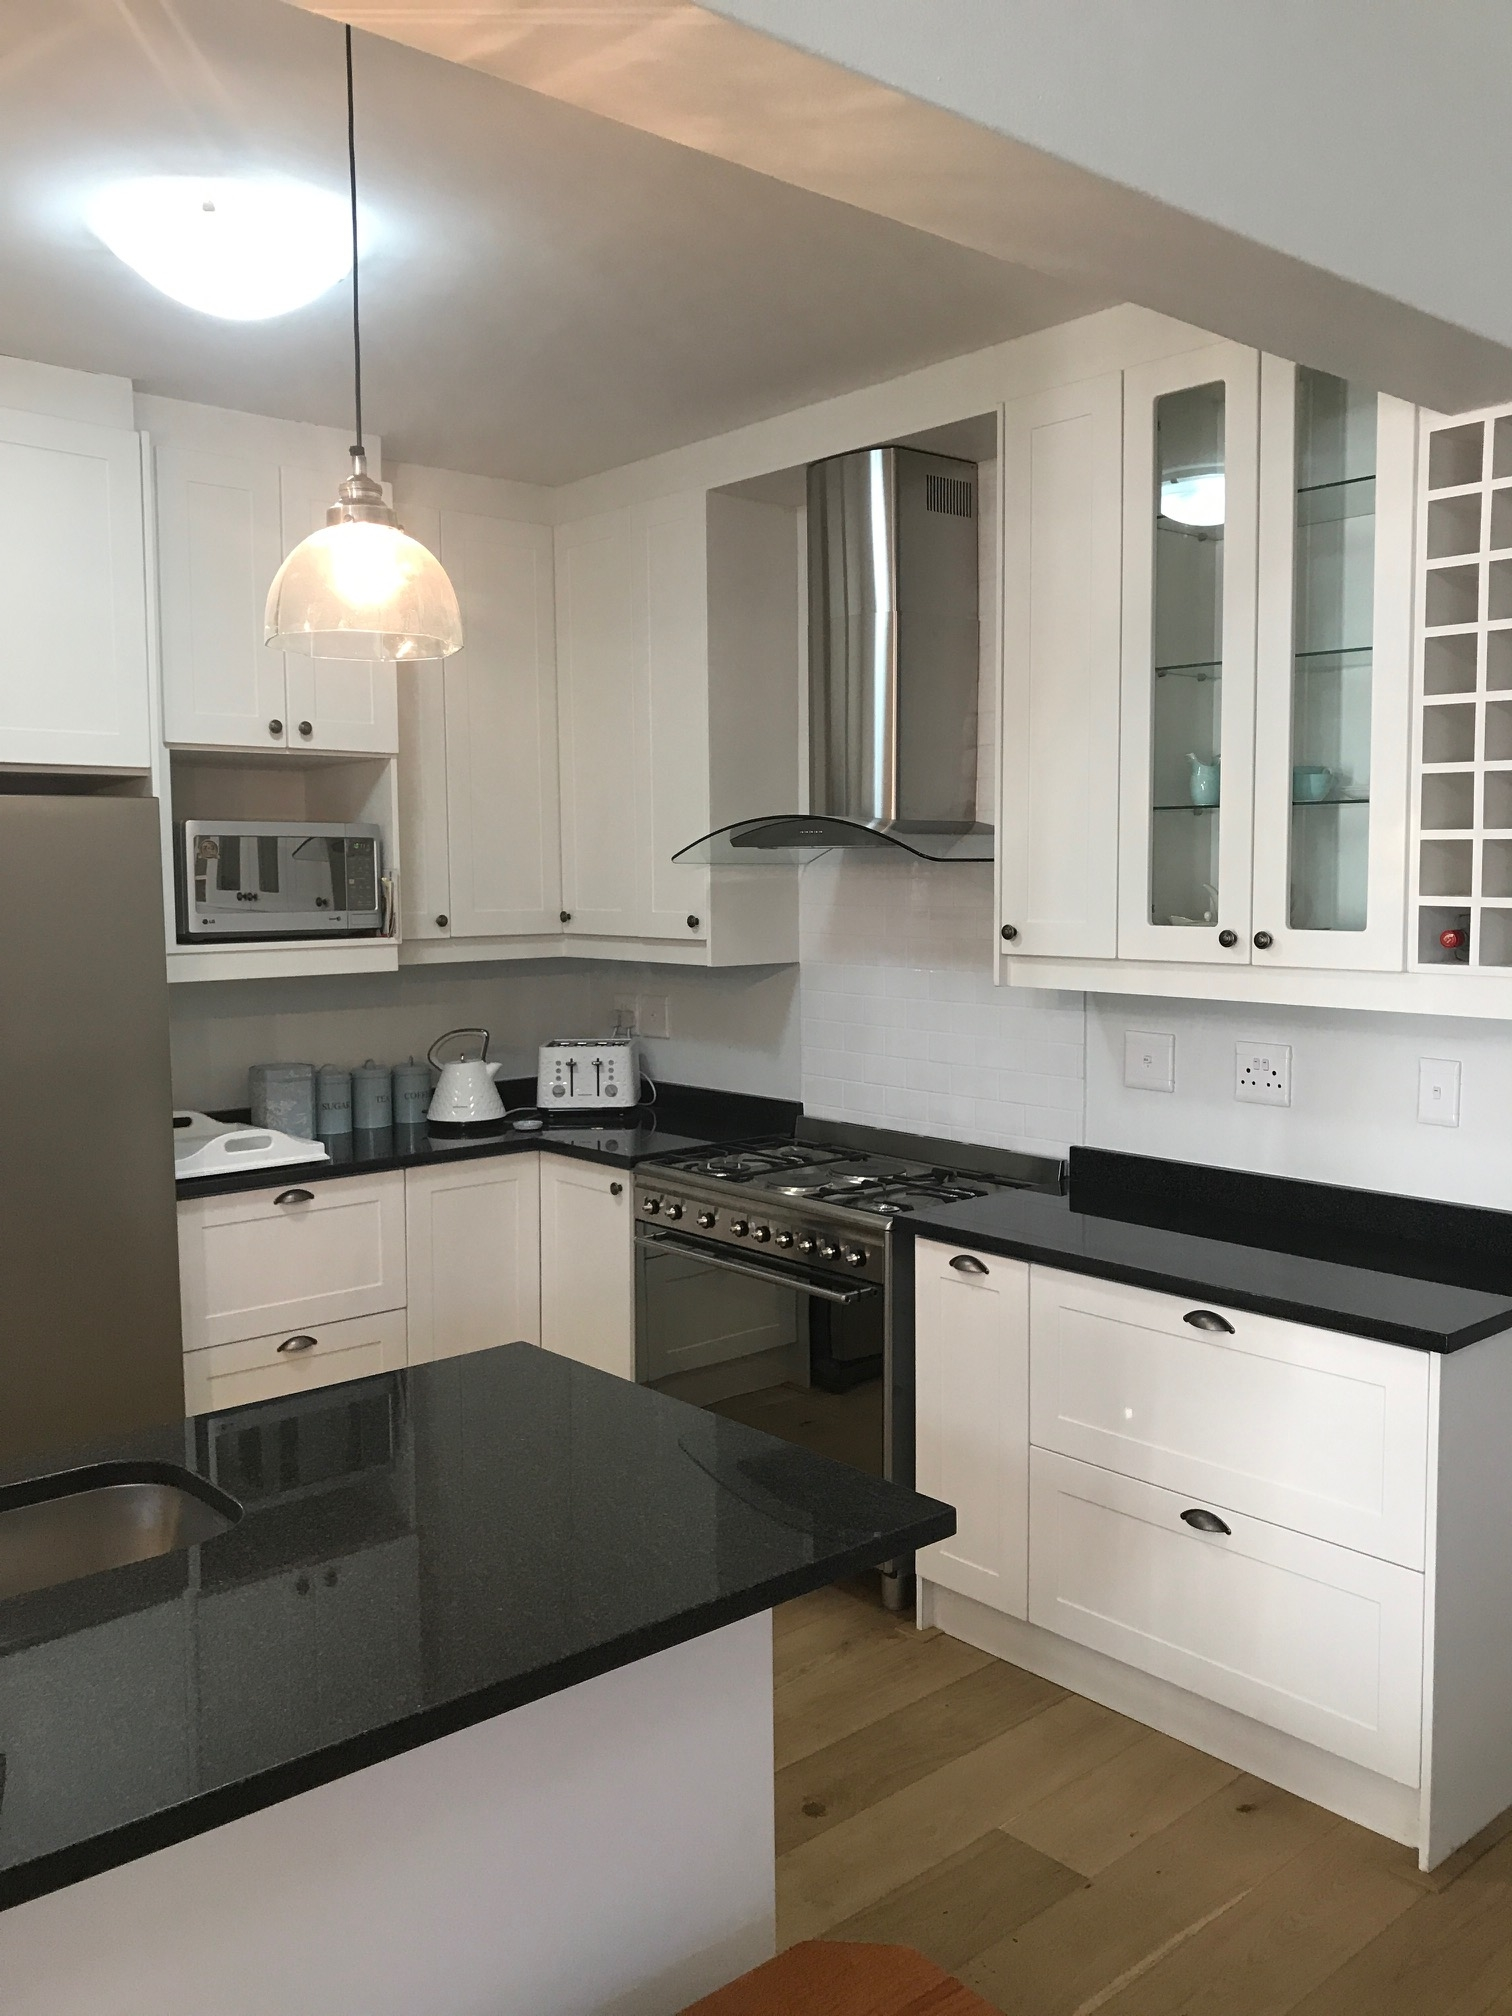 Kitchen Design And Kitchen Cupboards By Echo Kitchens In Cape Town